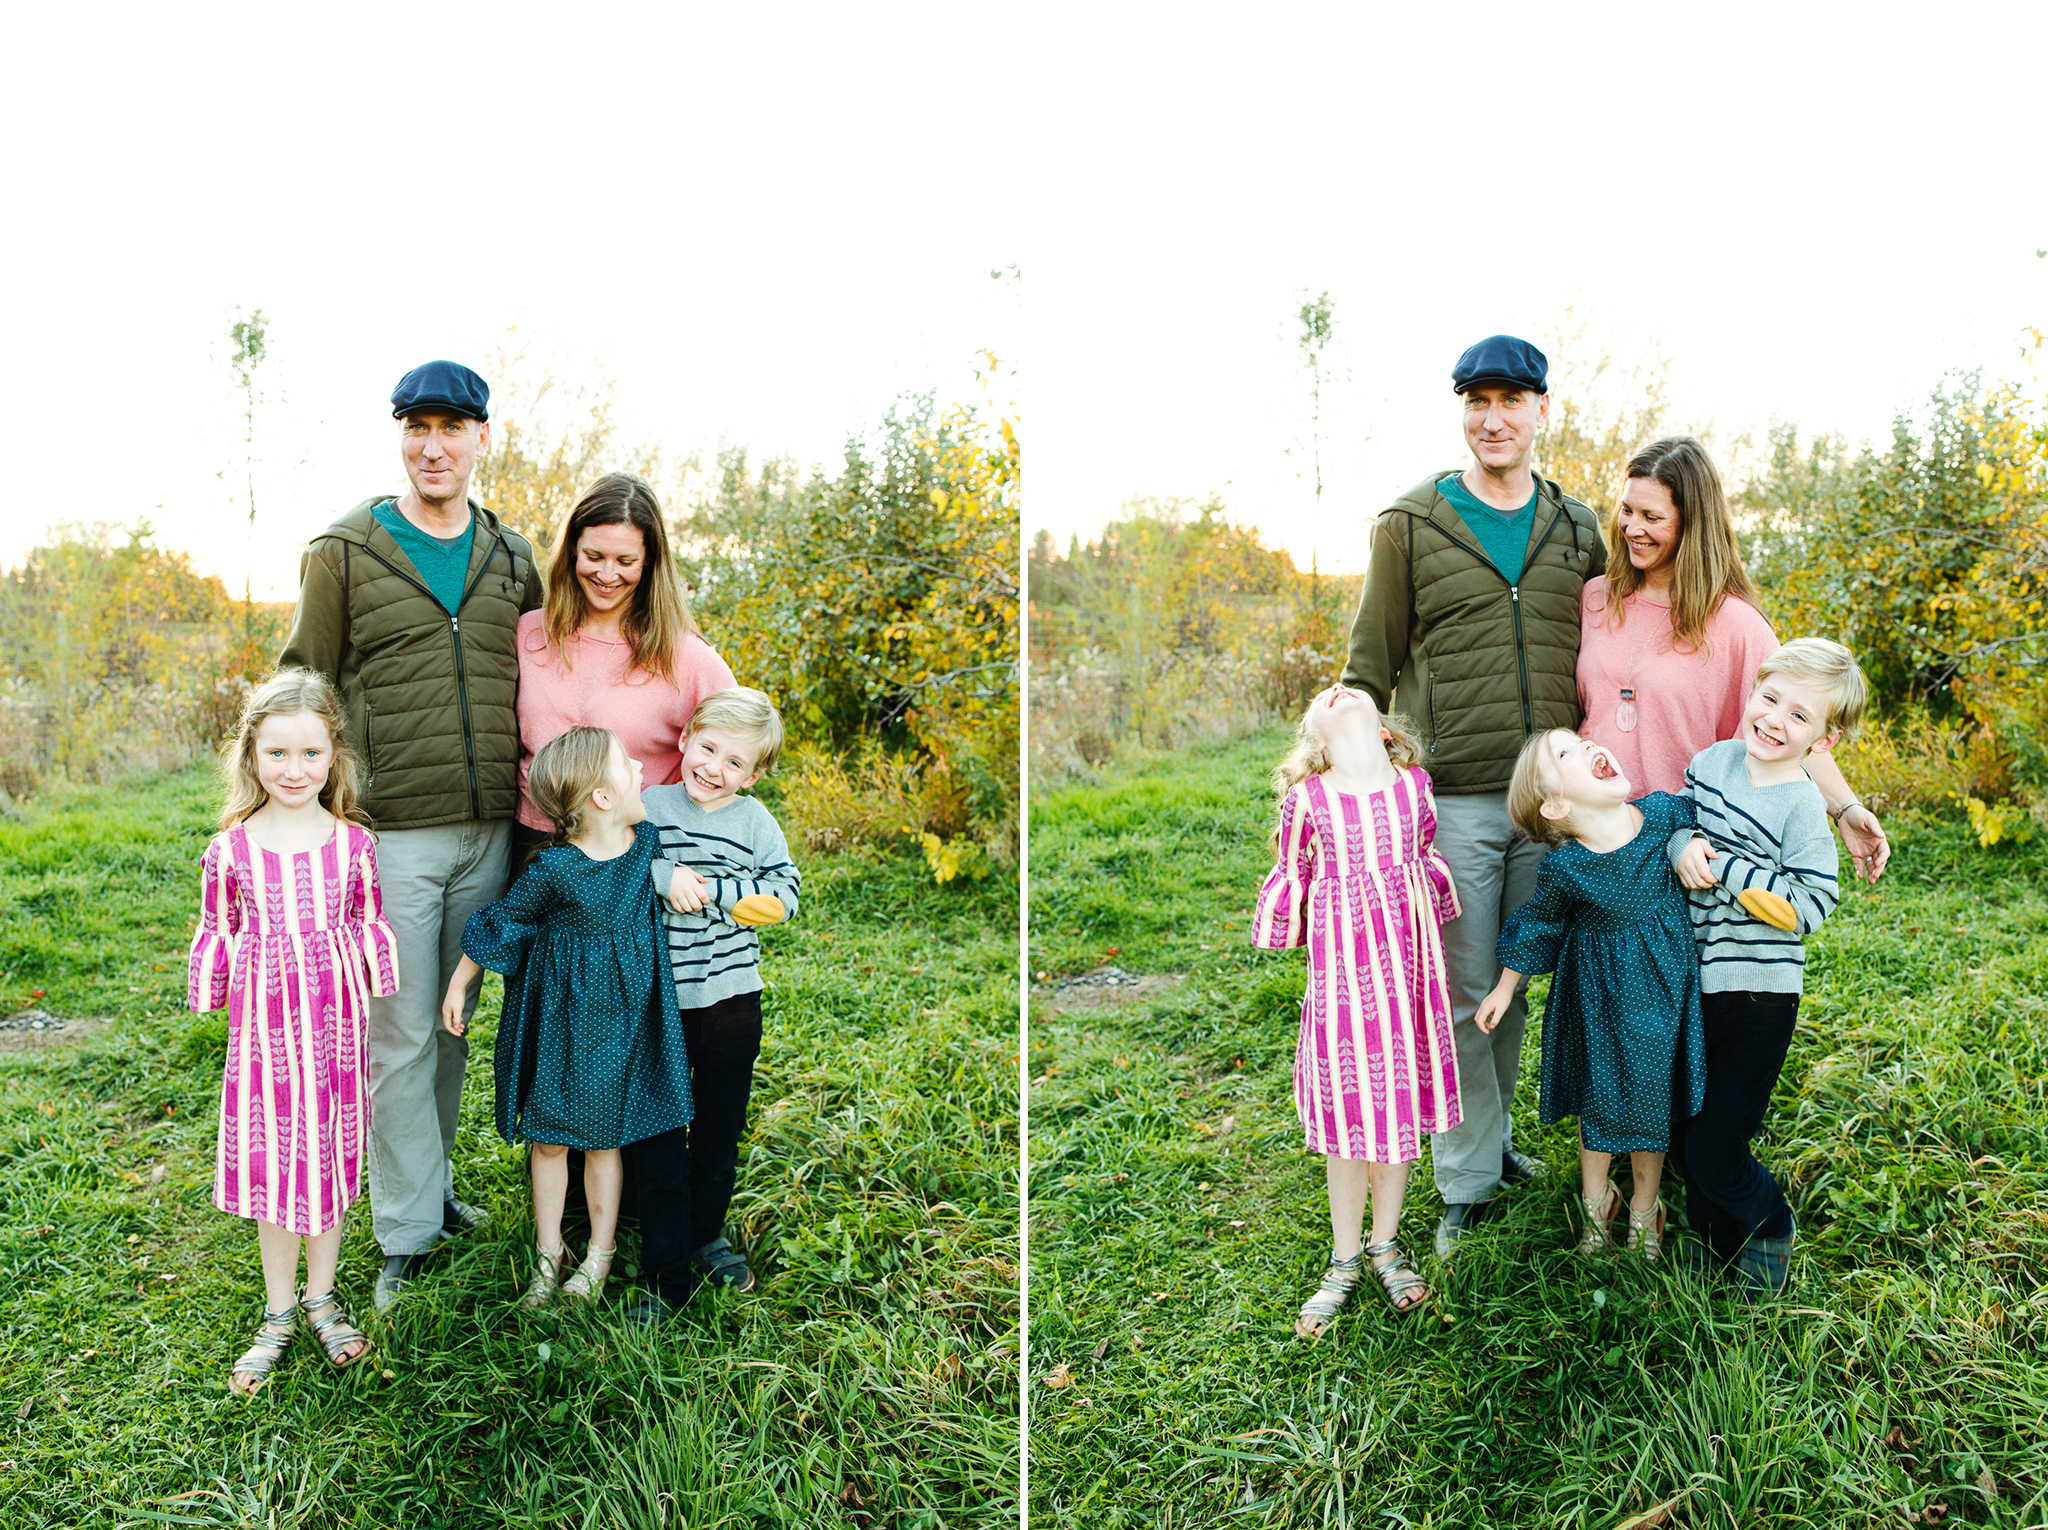 Olympia Area Fall Family Mini Sessions In An Apple Orchard